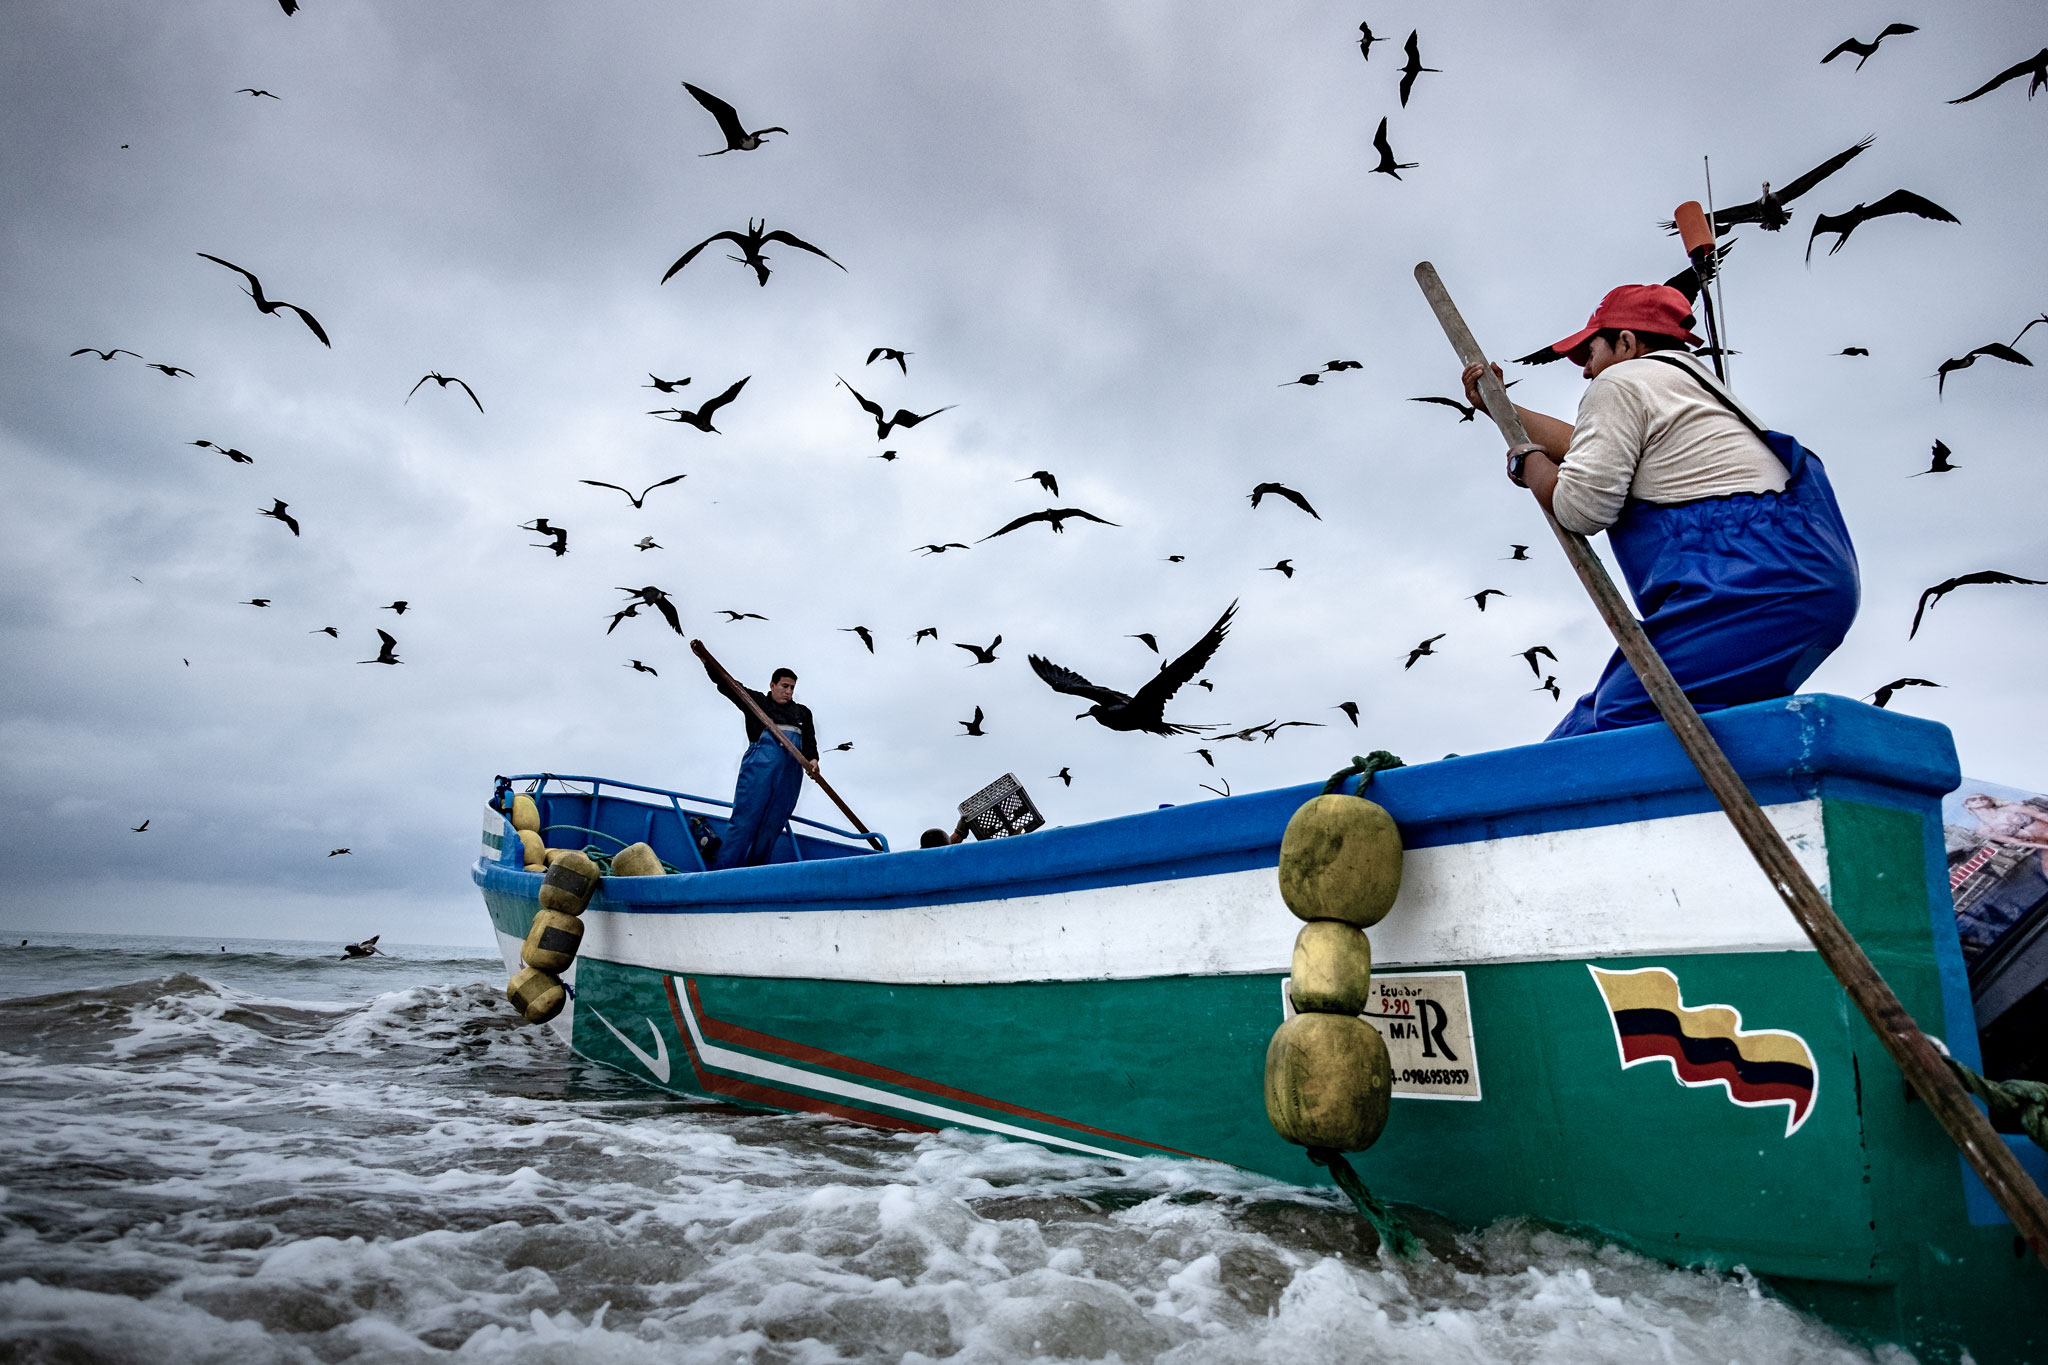 ECUADORIAN FISHERMEN KEEPING THE BOAT STABLE